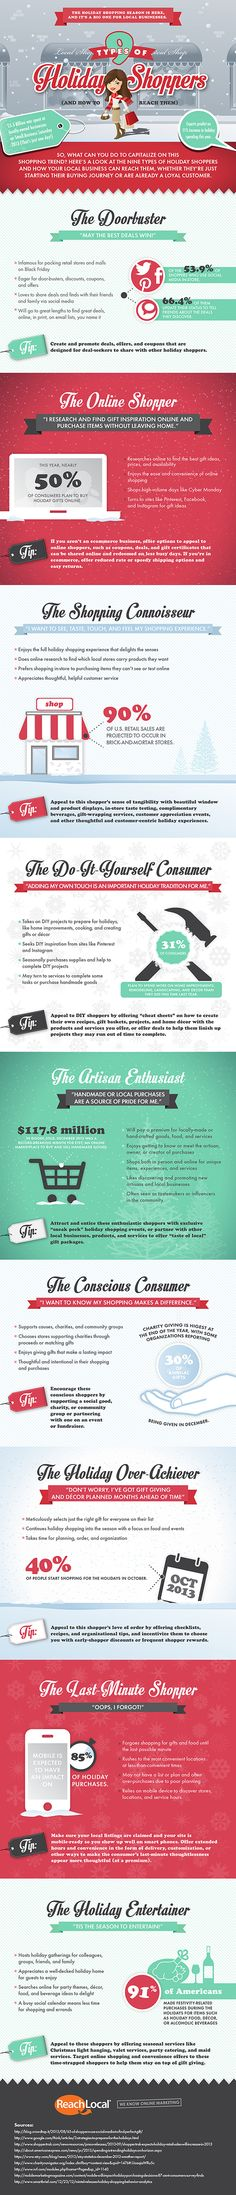 Nine Types of Holiday Shoppers [Infographic]